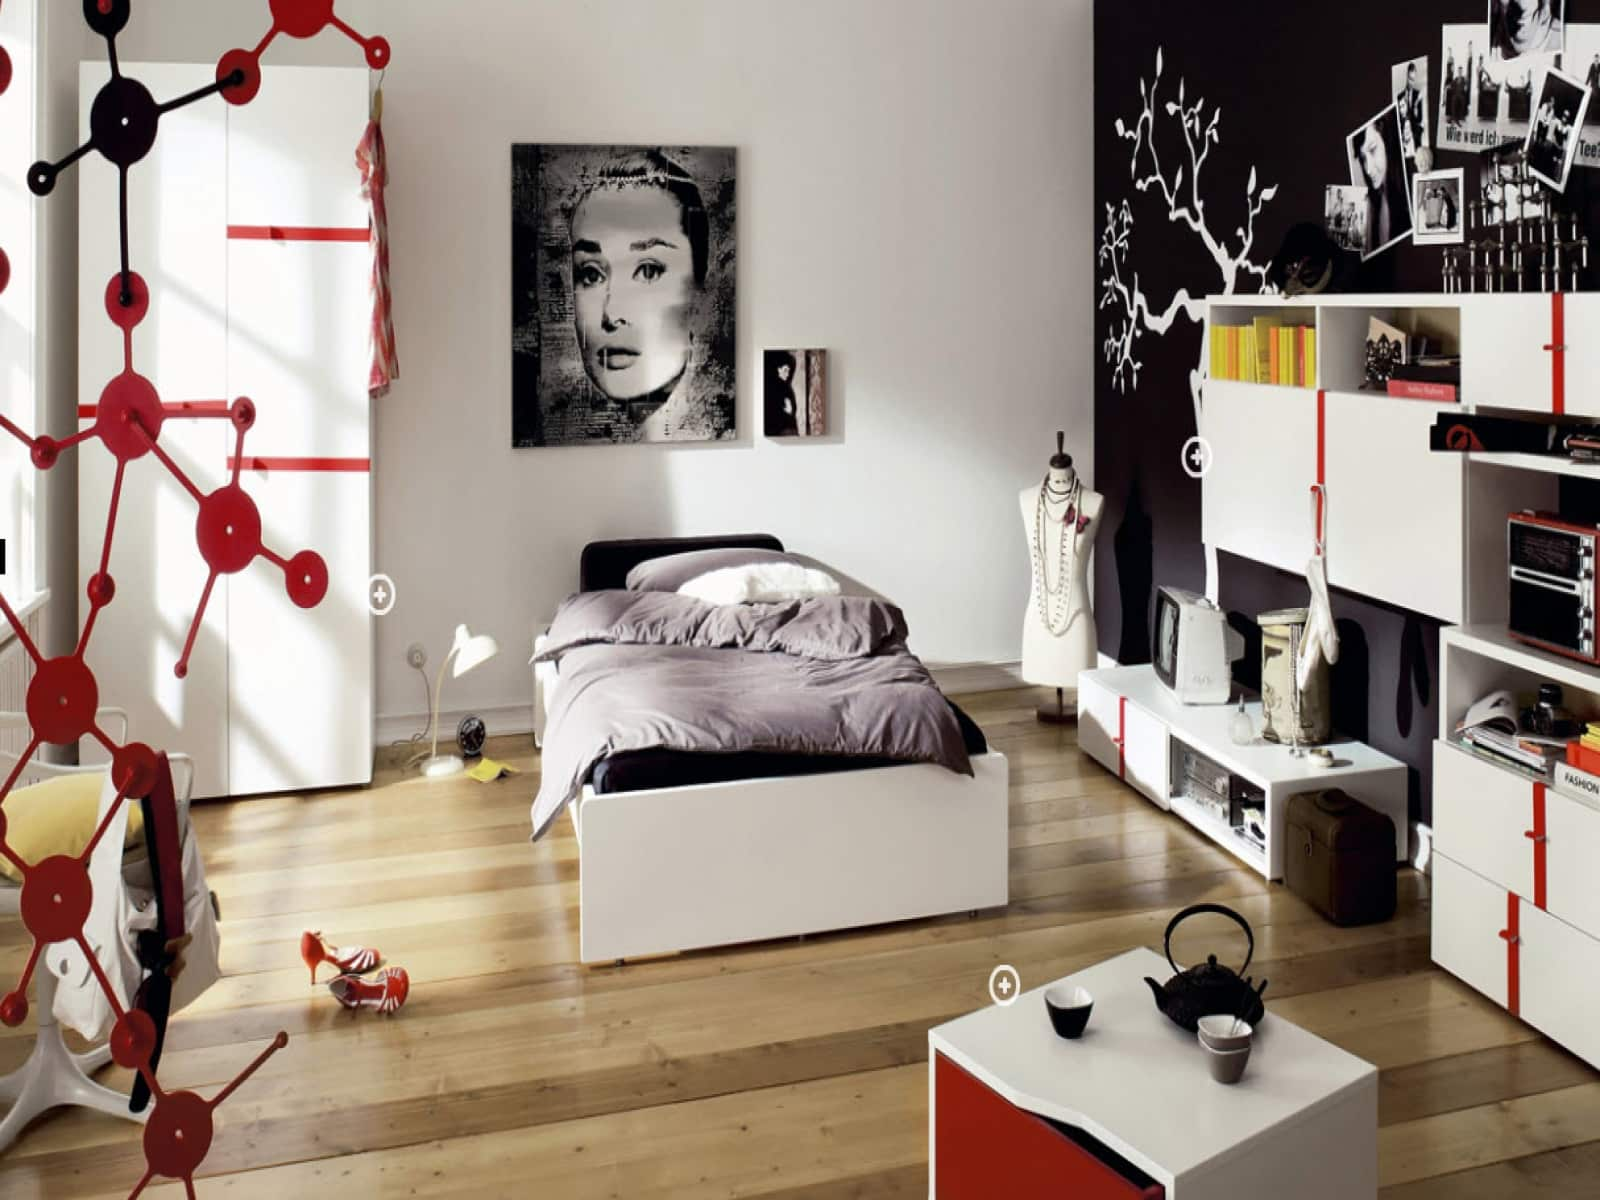 Big Girl Room Interior Design and Decoration Ideas. Picture and black accent wall to adorn space